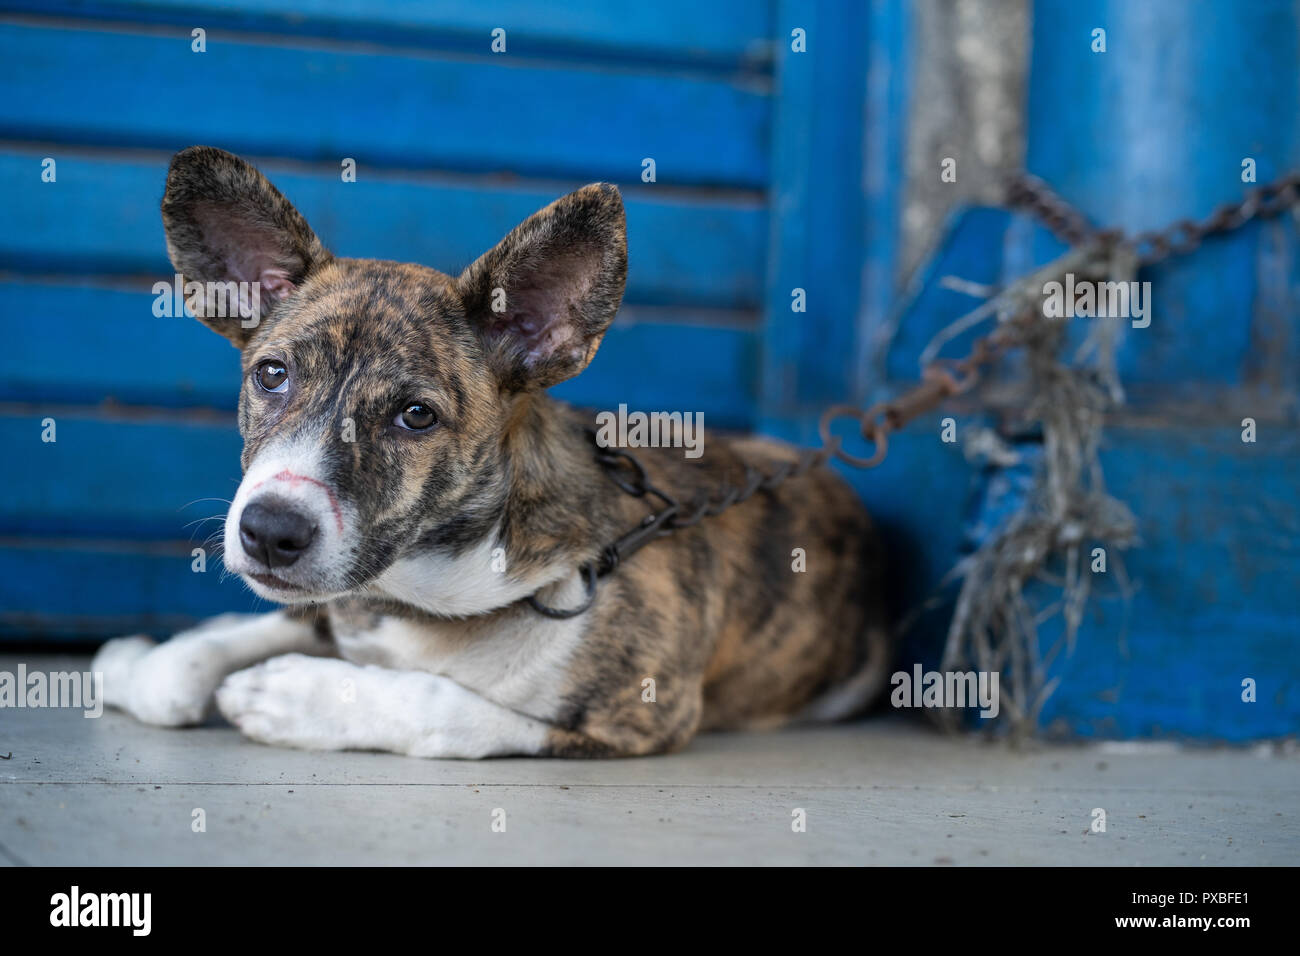 A dog lies on a street pavement with a short chain anchored to a post. - Stock Image